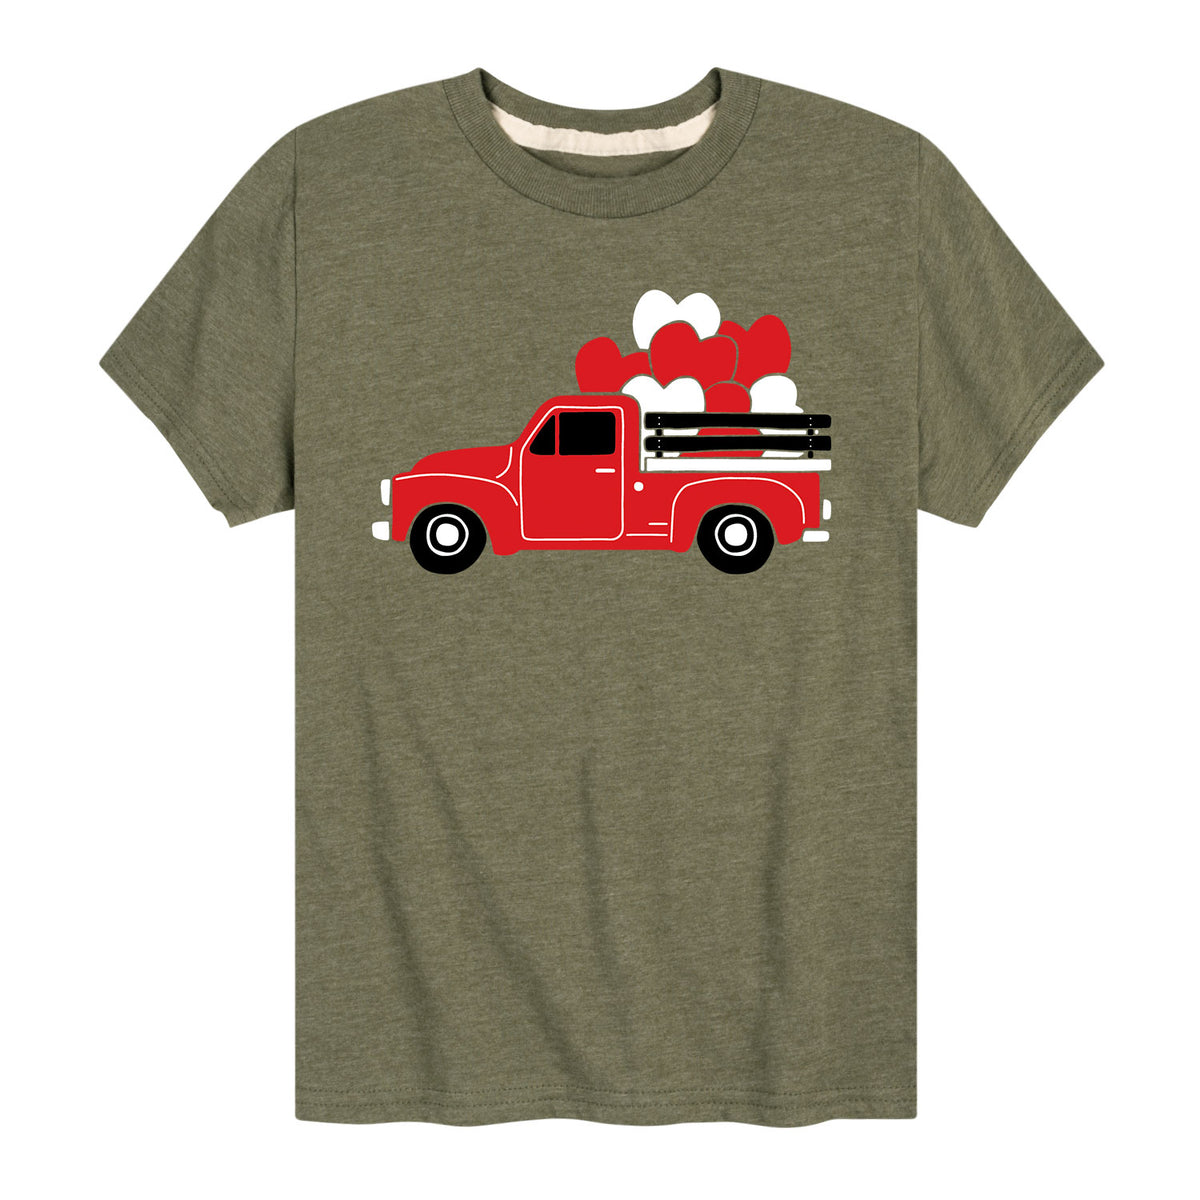 Delivering Hearts - Youth & Toddler Short Sleeve T-Shirt